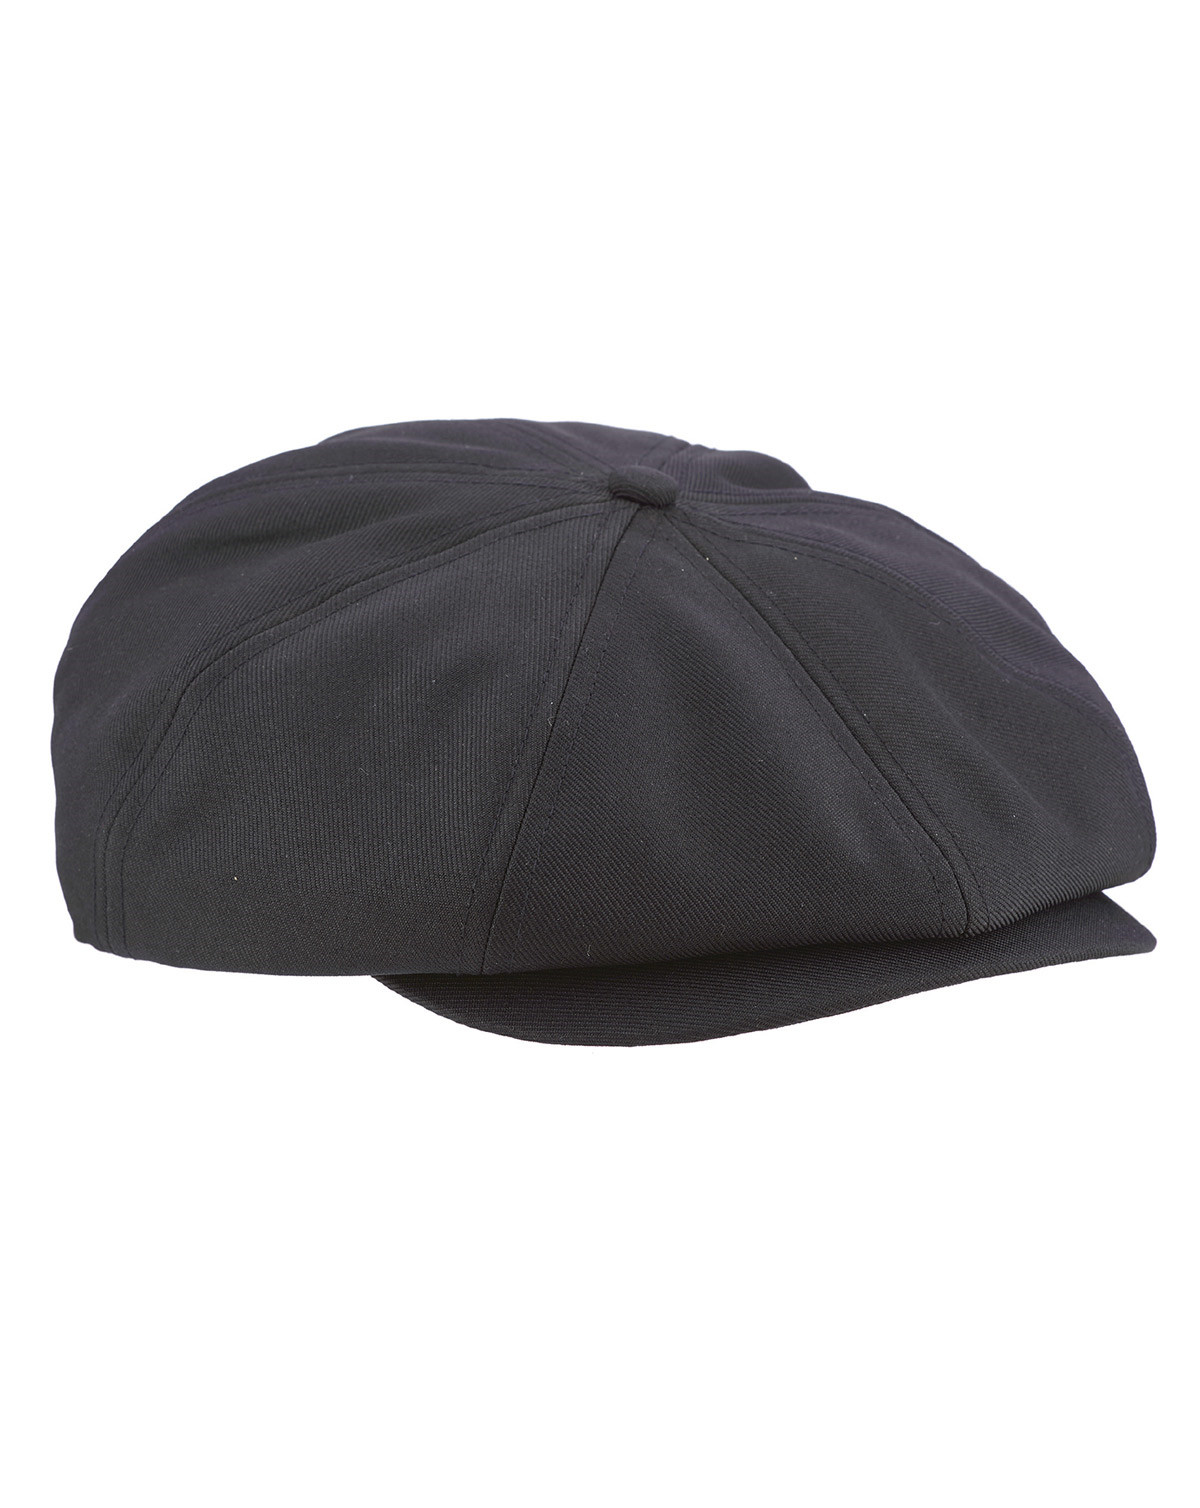 Image of   Dickies Jacksonport Flat Cap (Sort, One Size)